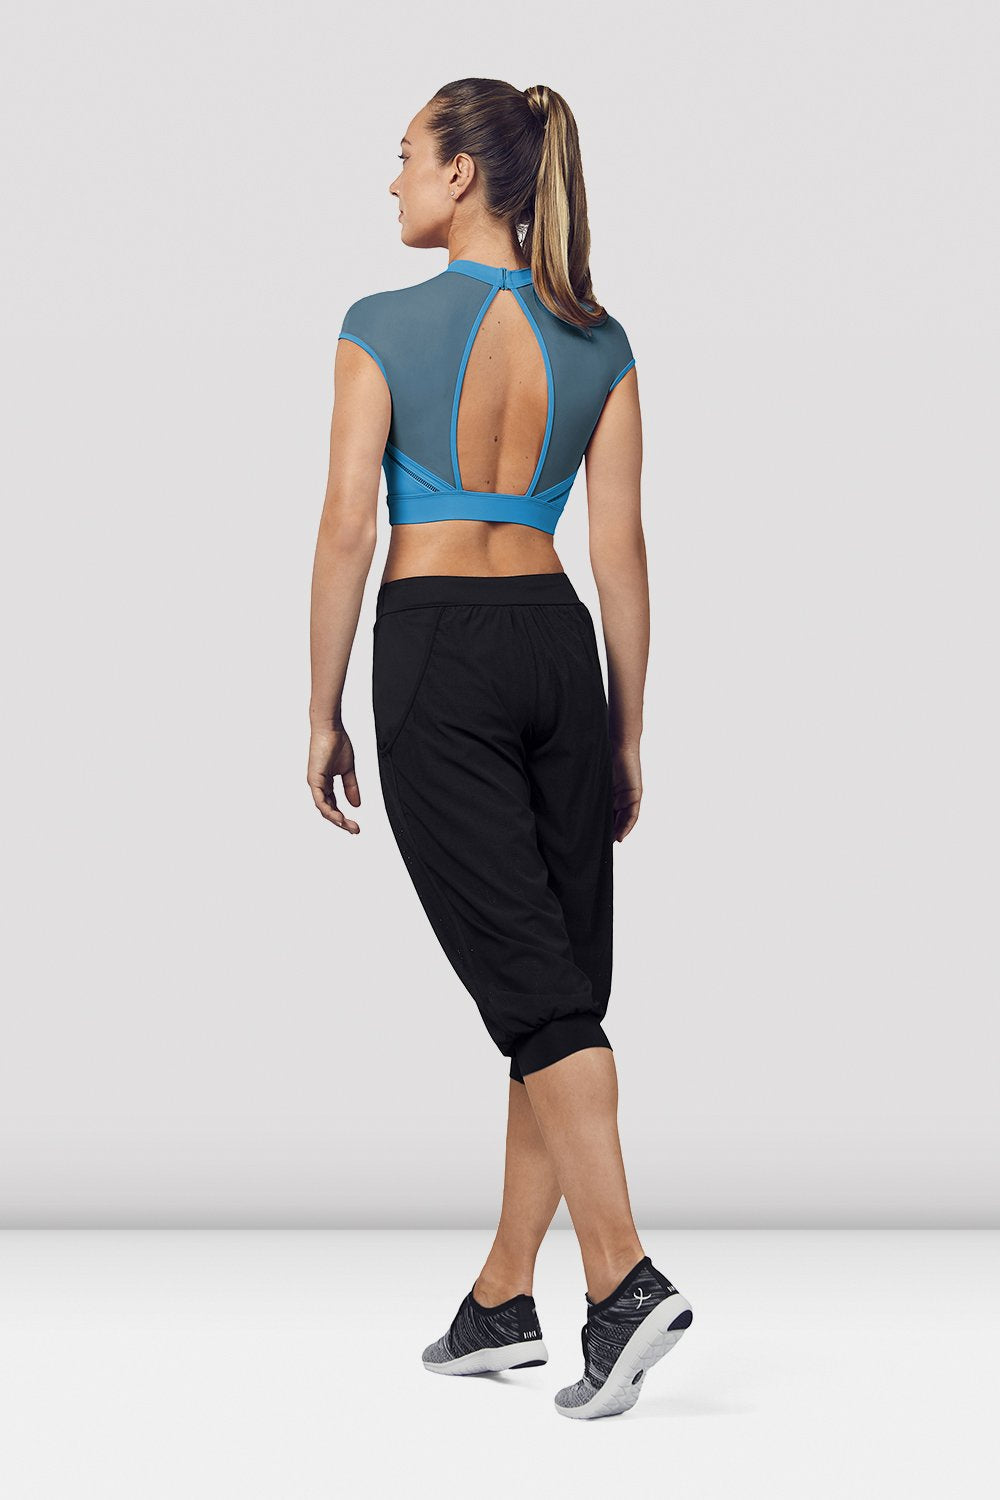 Ladies Open Back Cap Sleeve Crop Top - BLOCH US